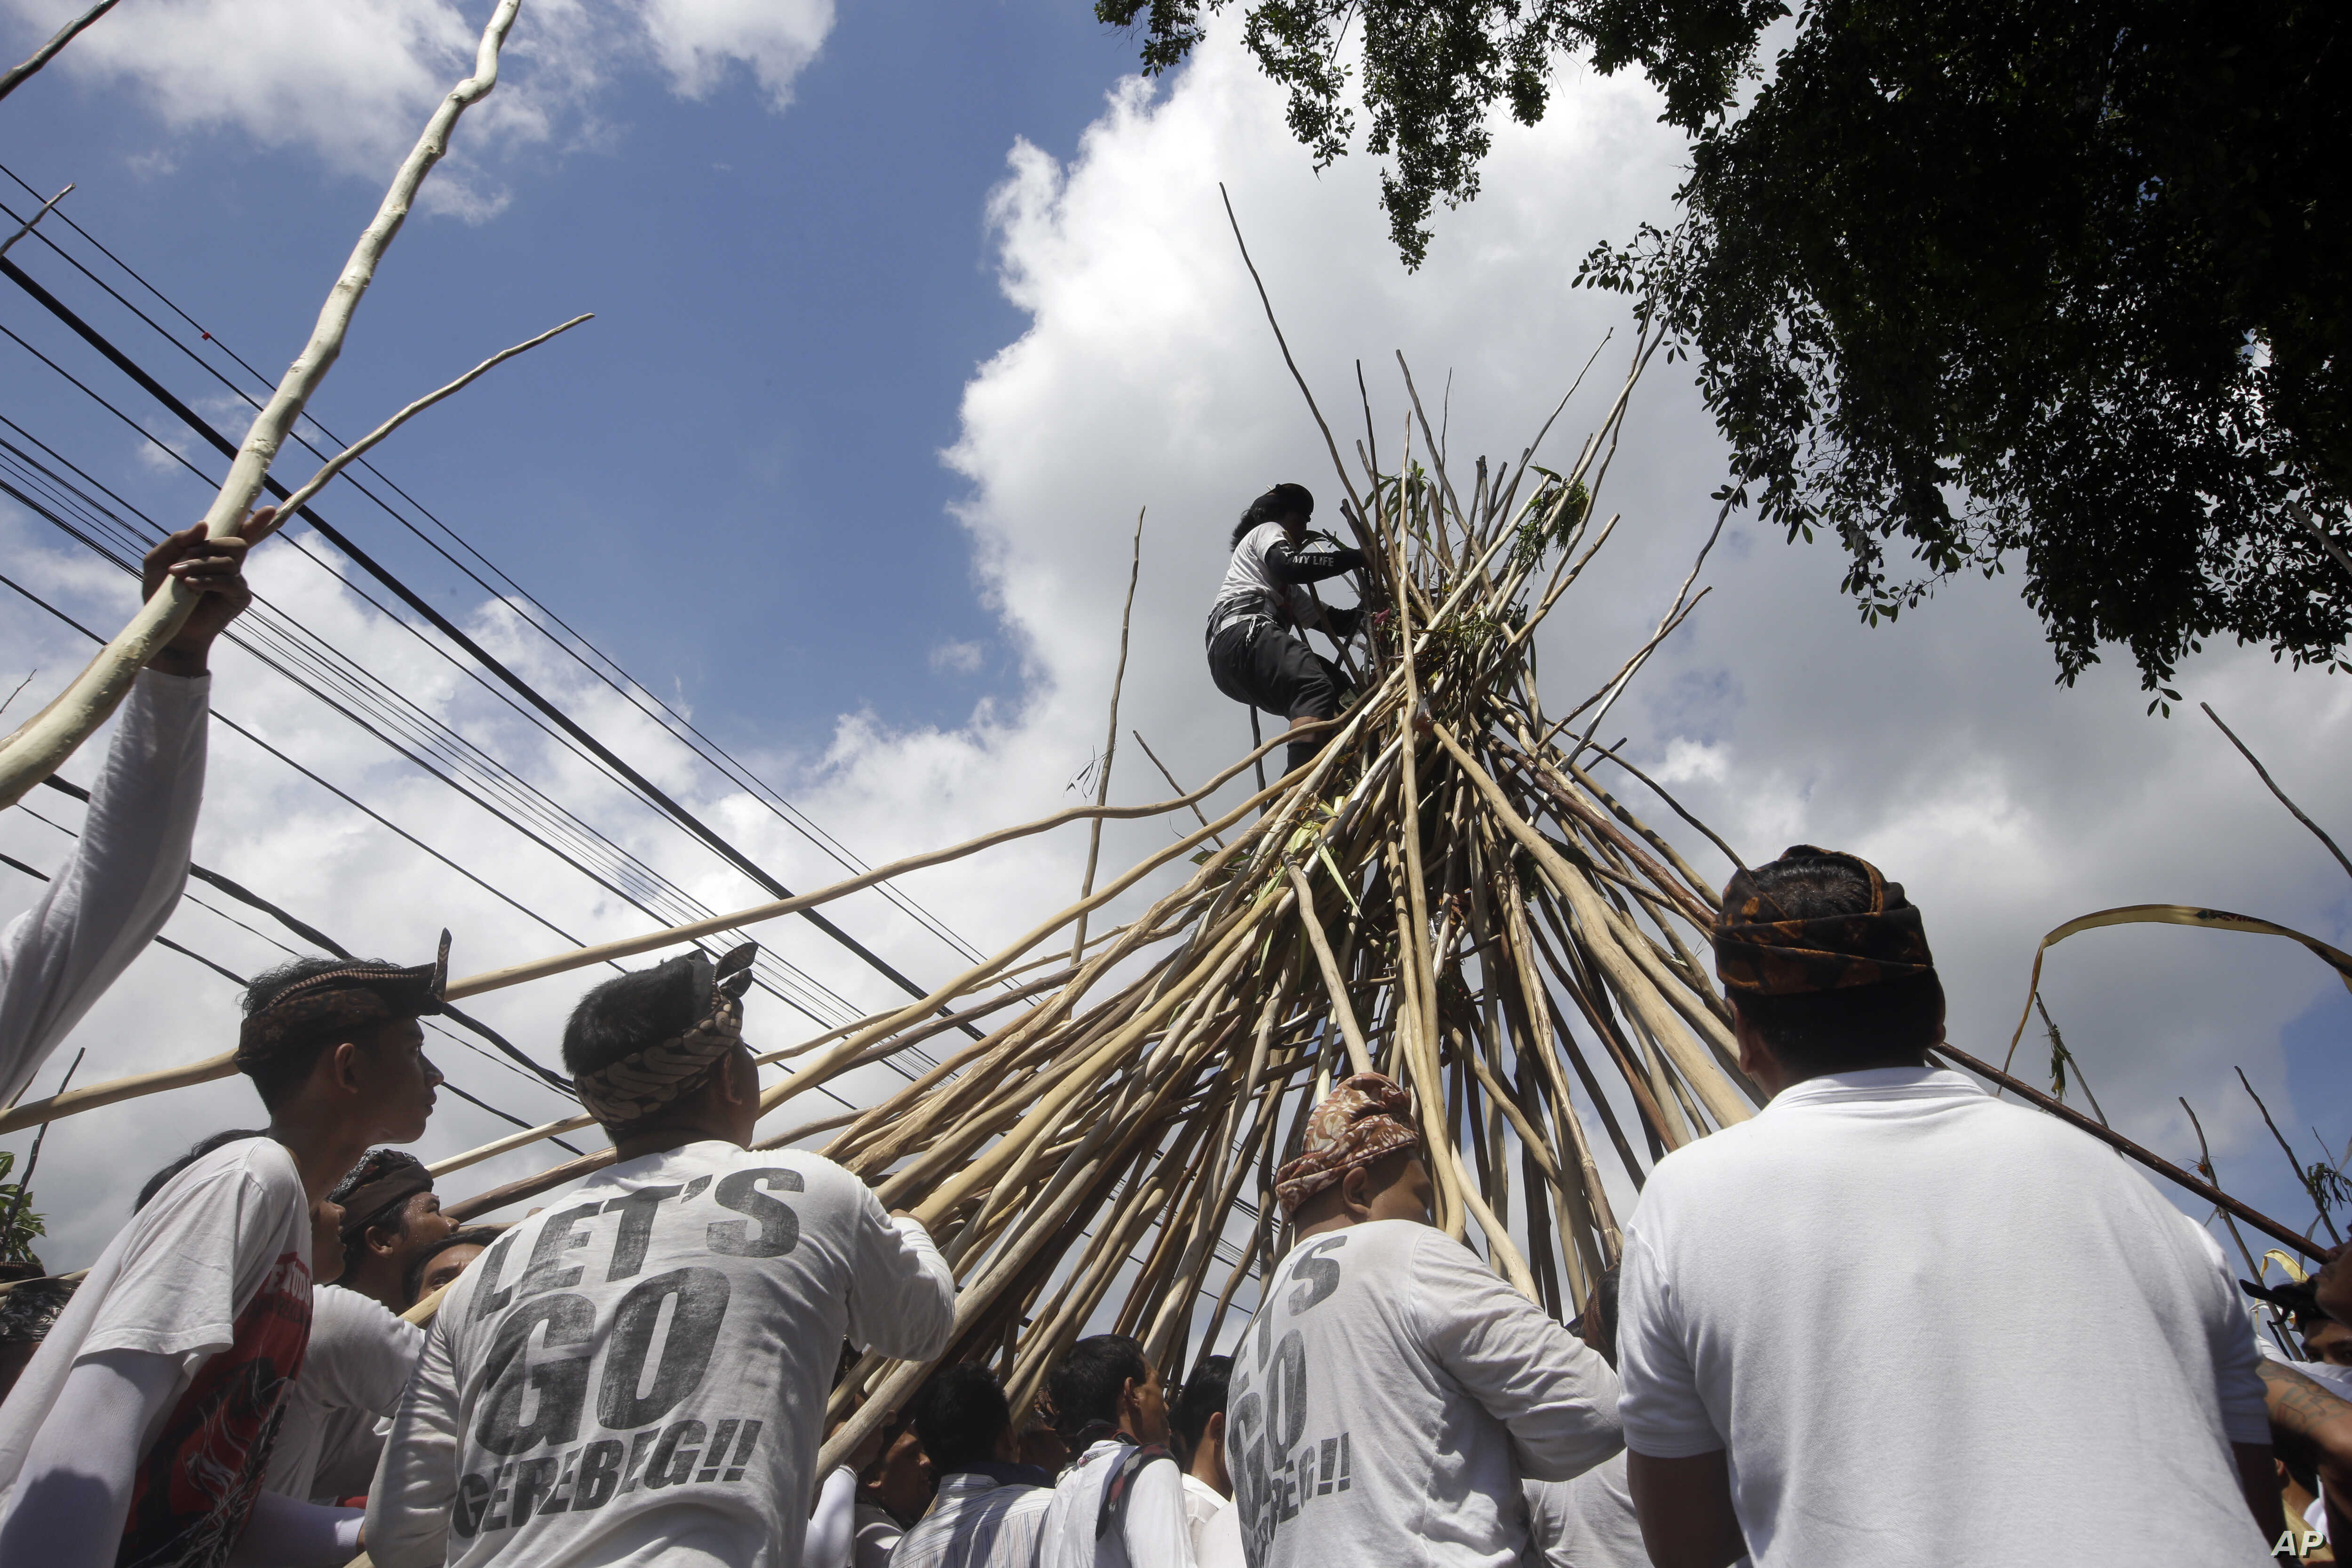 """A man stands on a cone of sticks during a Hindu ritual called """"Mekotek,"""" a traditional stick fighting ceremony used to celebrate the triumph of good over evil, in Bali, Indonesia, Saturday, Nov. 11, 2017."""